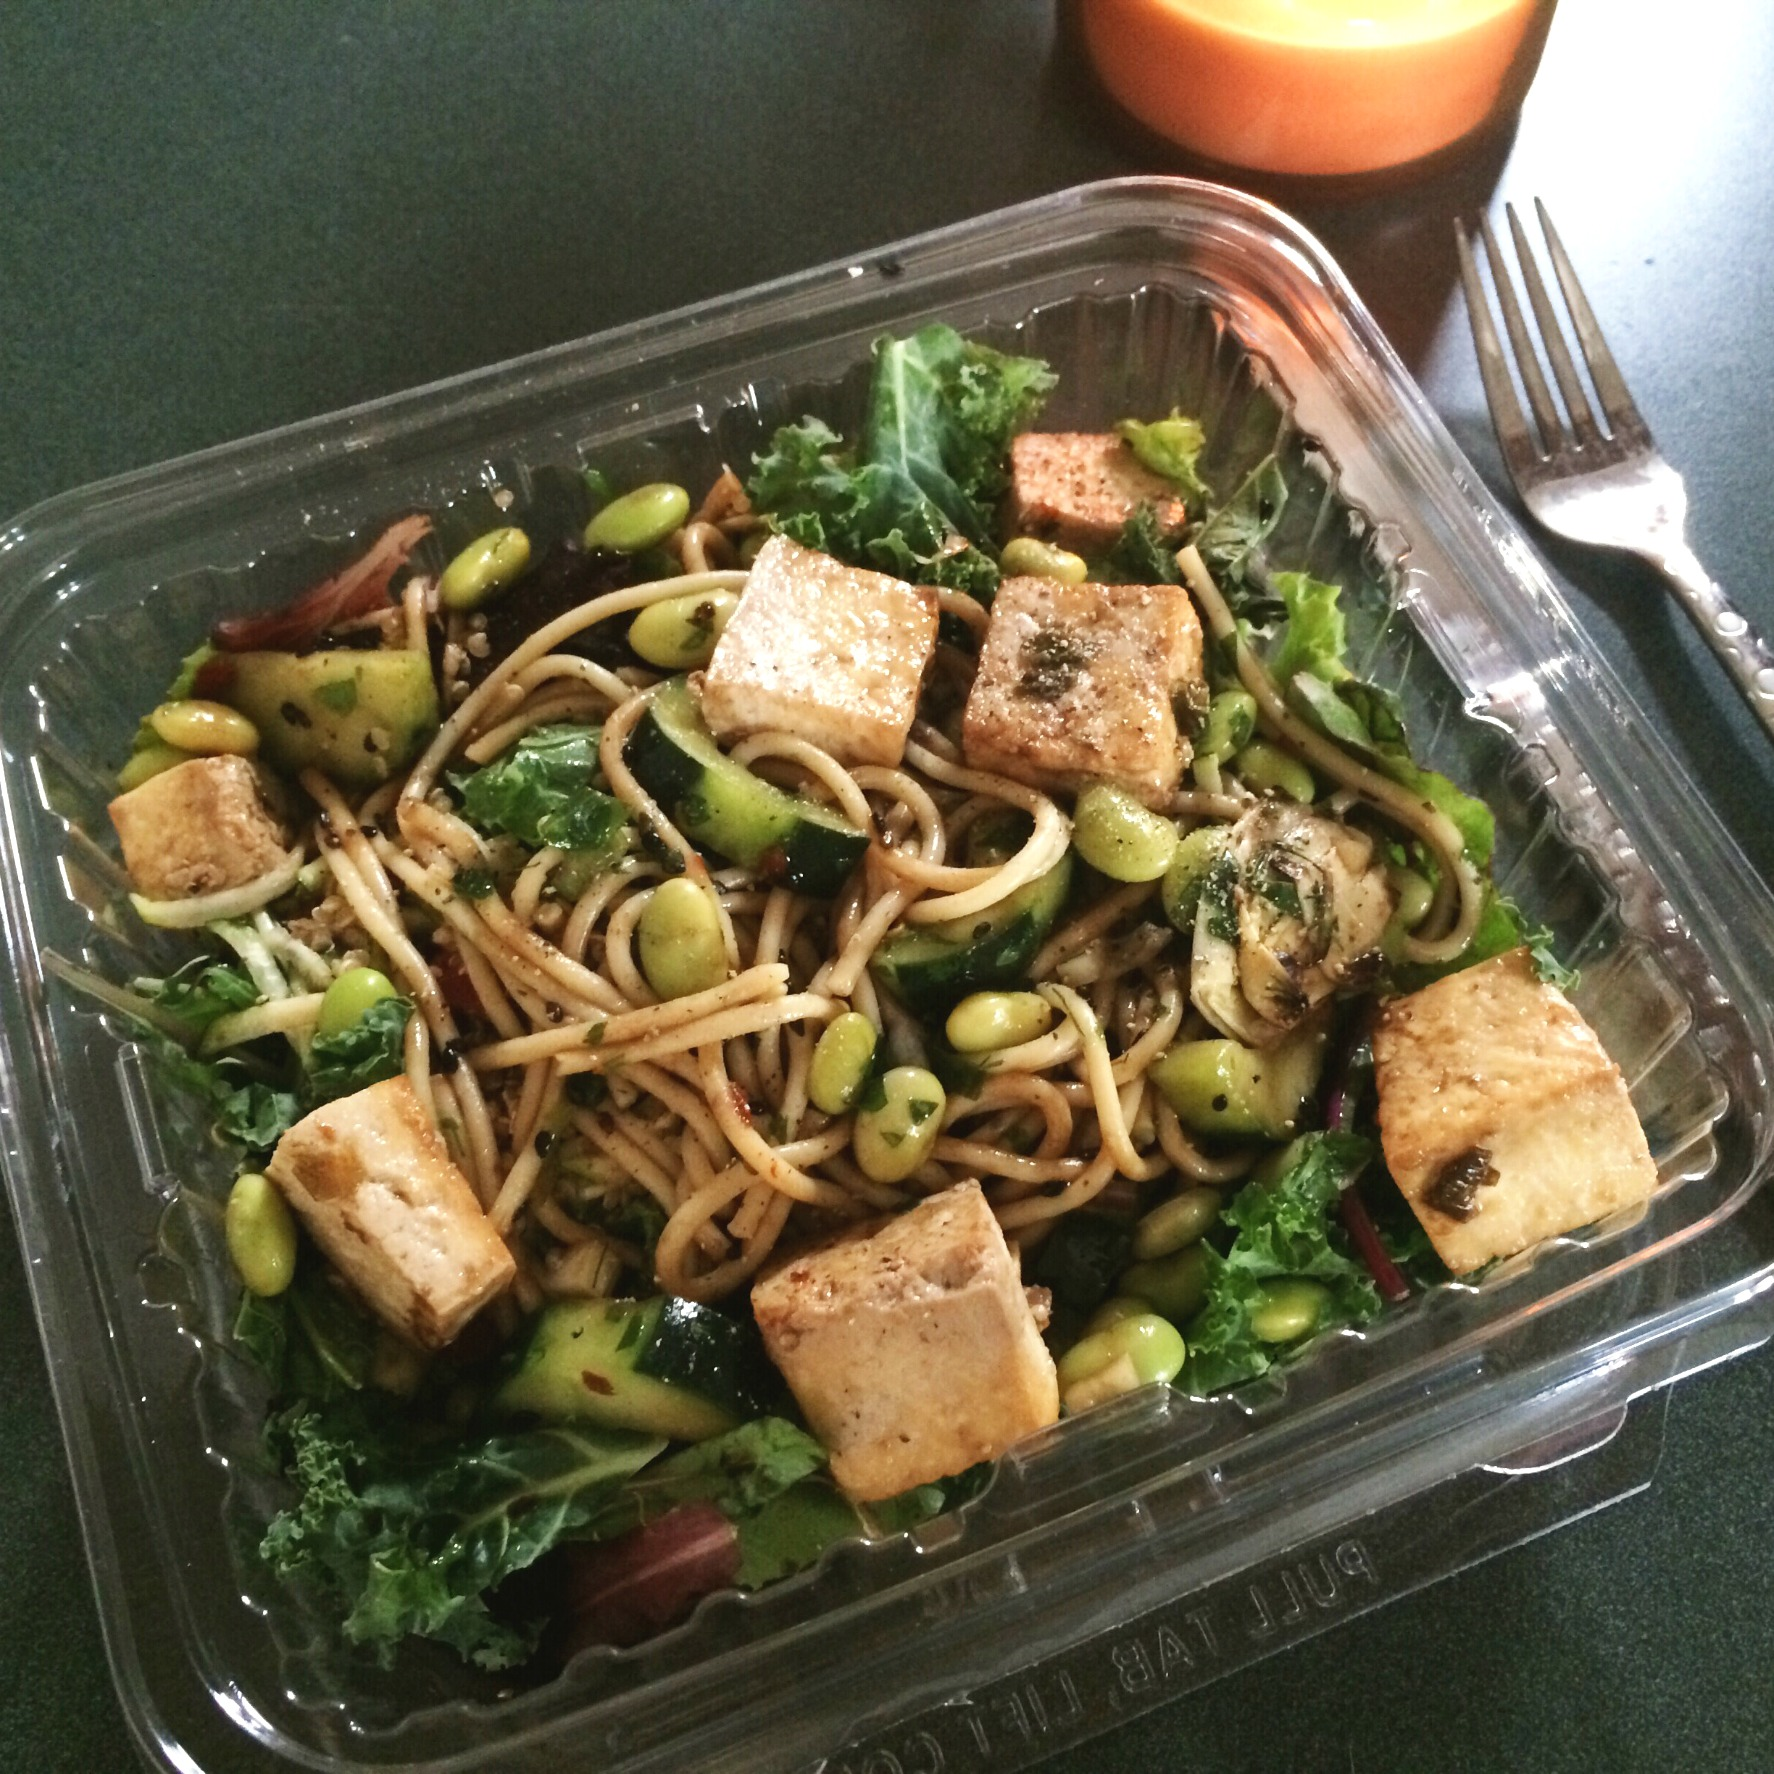 whole foods hot bar salad with tofu